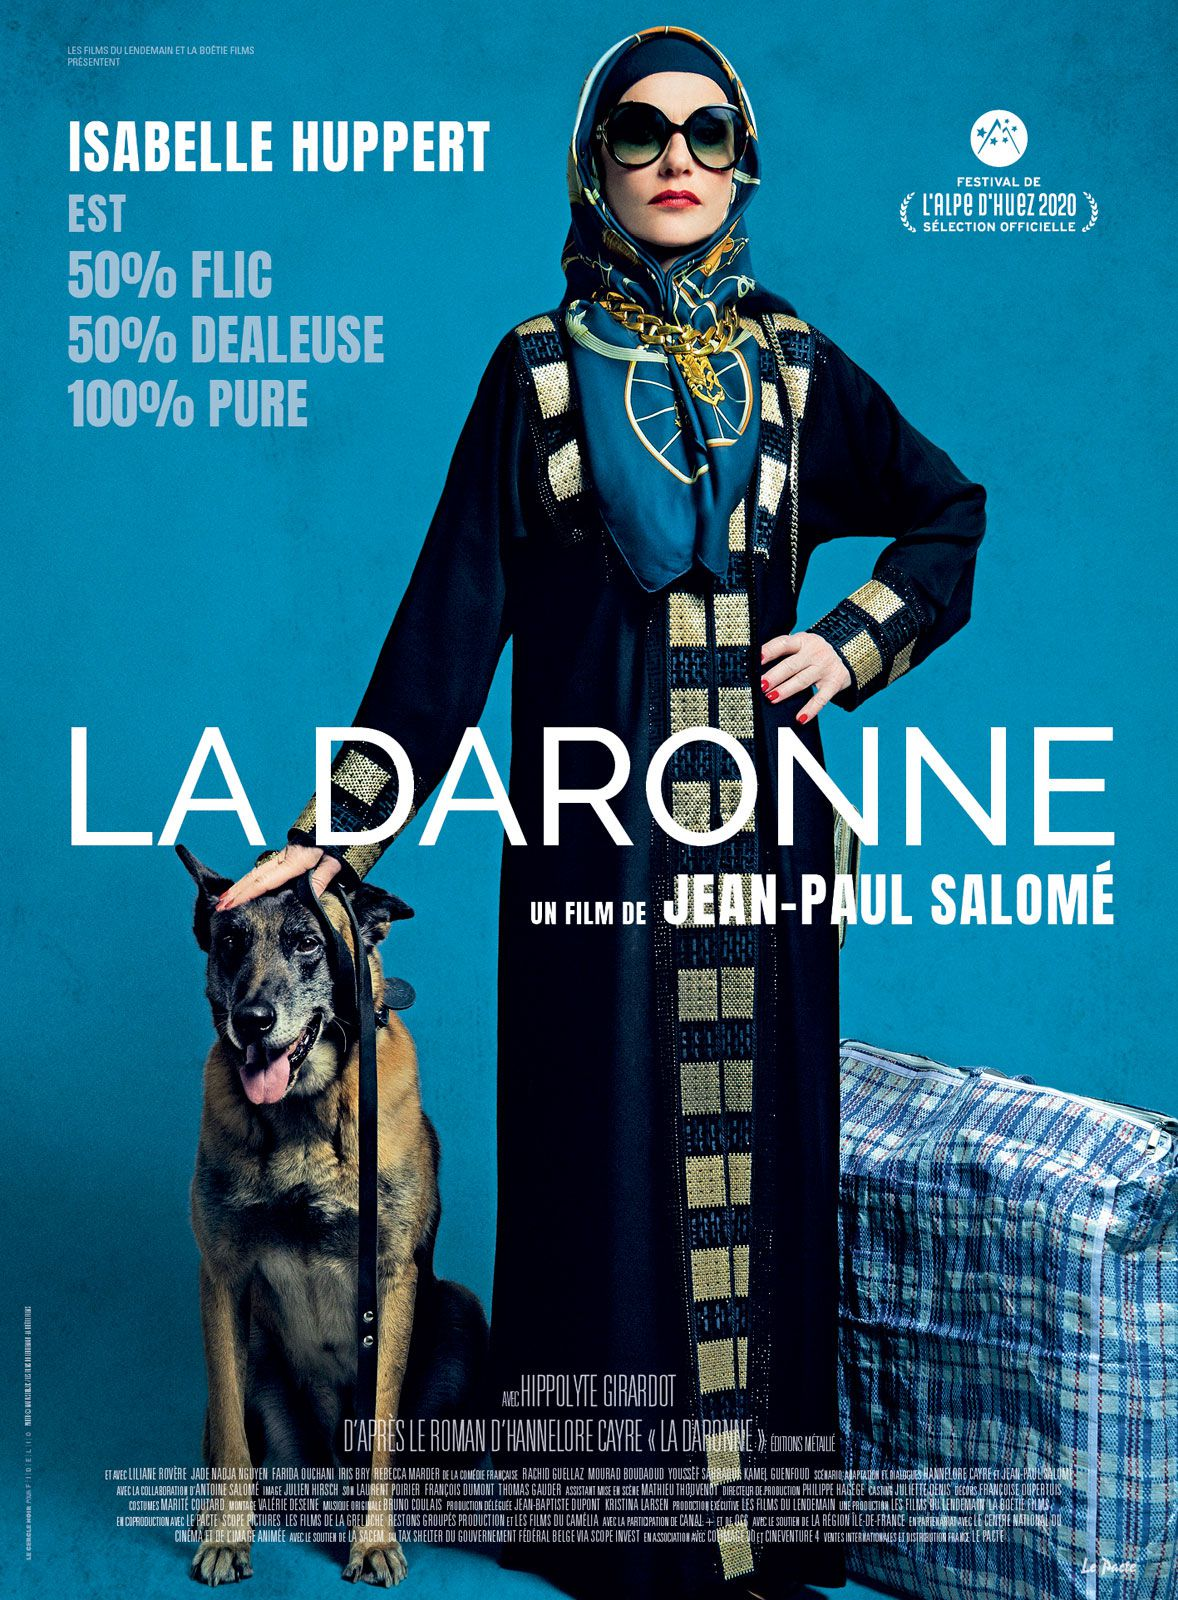 La Daronne - Film (2020) streaming VF gratuit complet